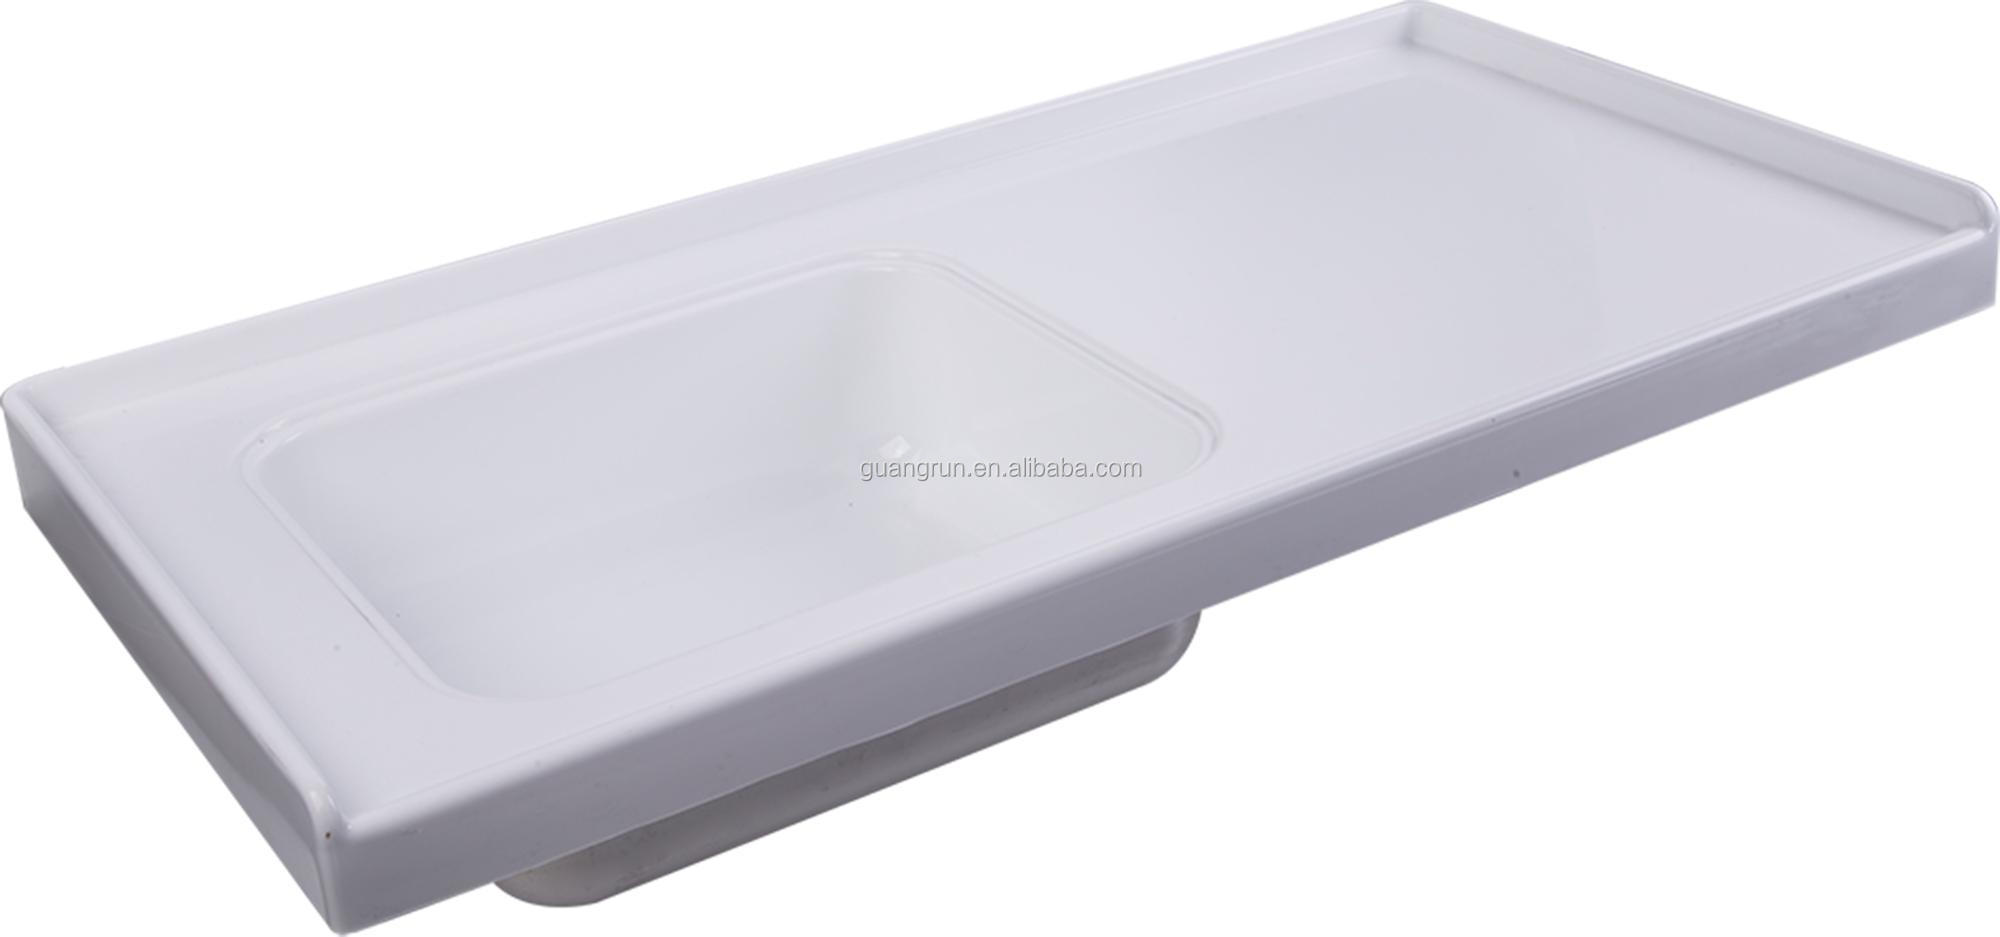 new product rv abs plastic sink with board gr y023a buy caravan plastic sink motorhome trough camping trailer sink product on alibaba com